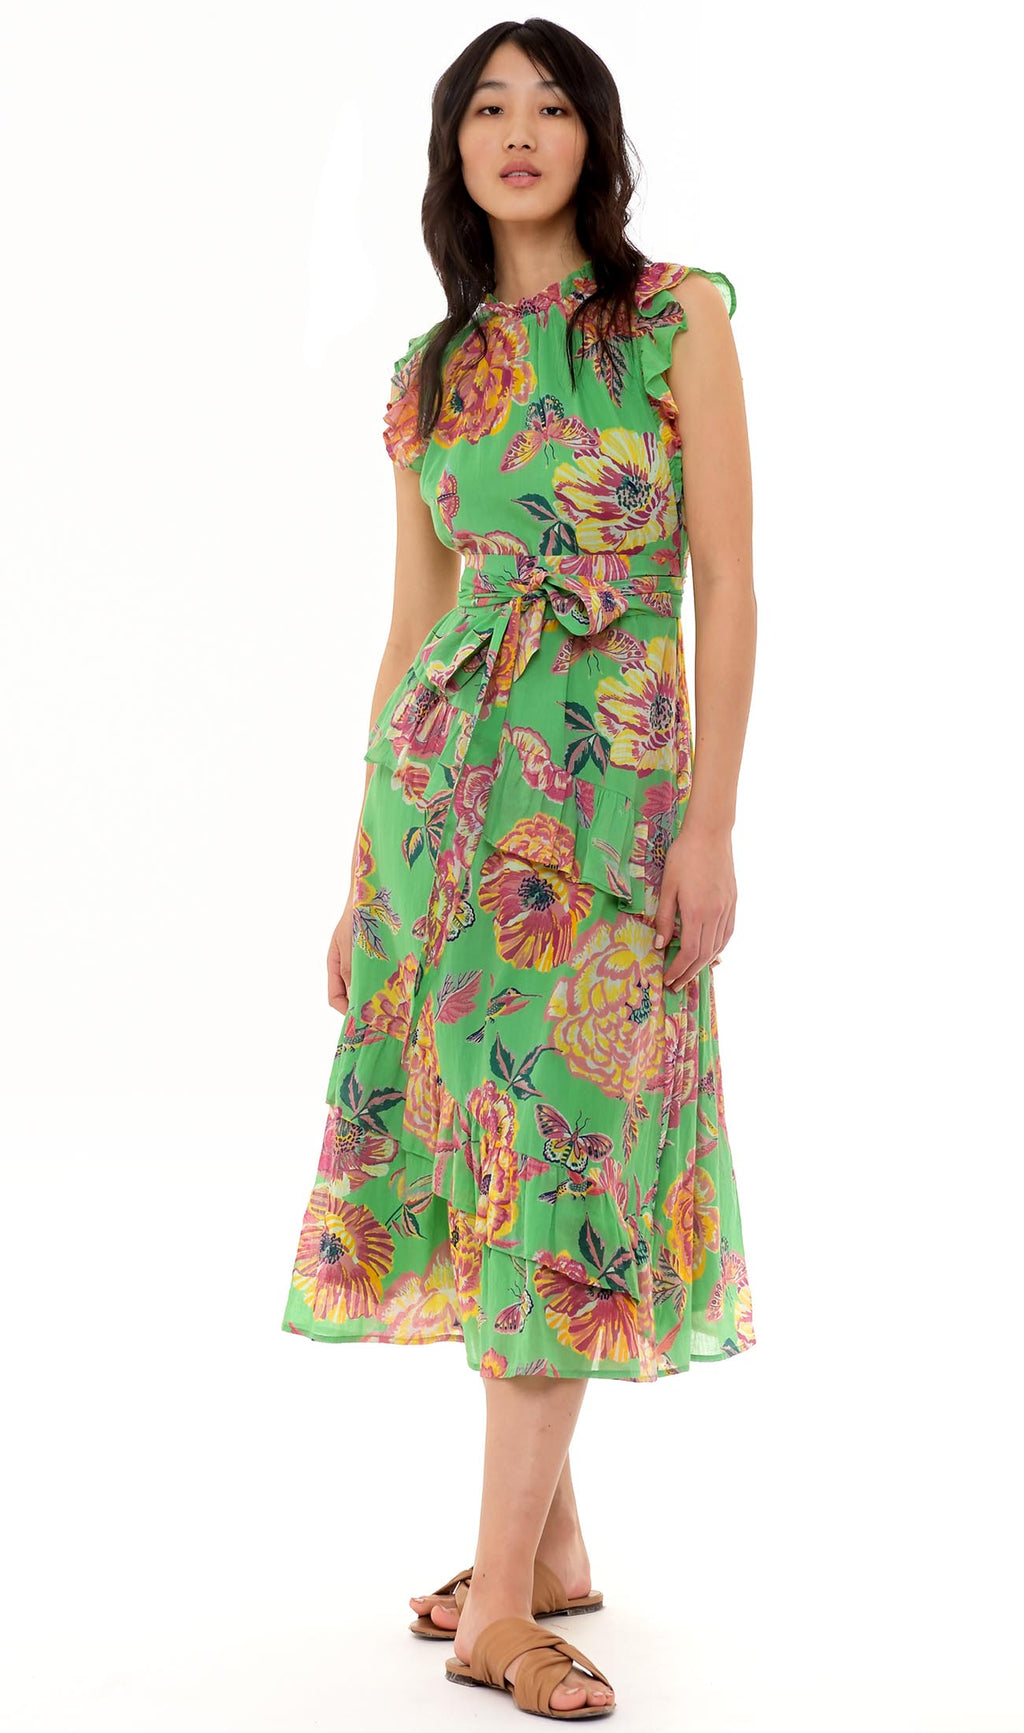 Banjanan Bella Dress Eliza's Rose Garden Island and Green